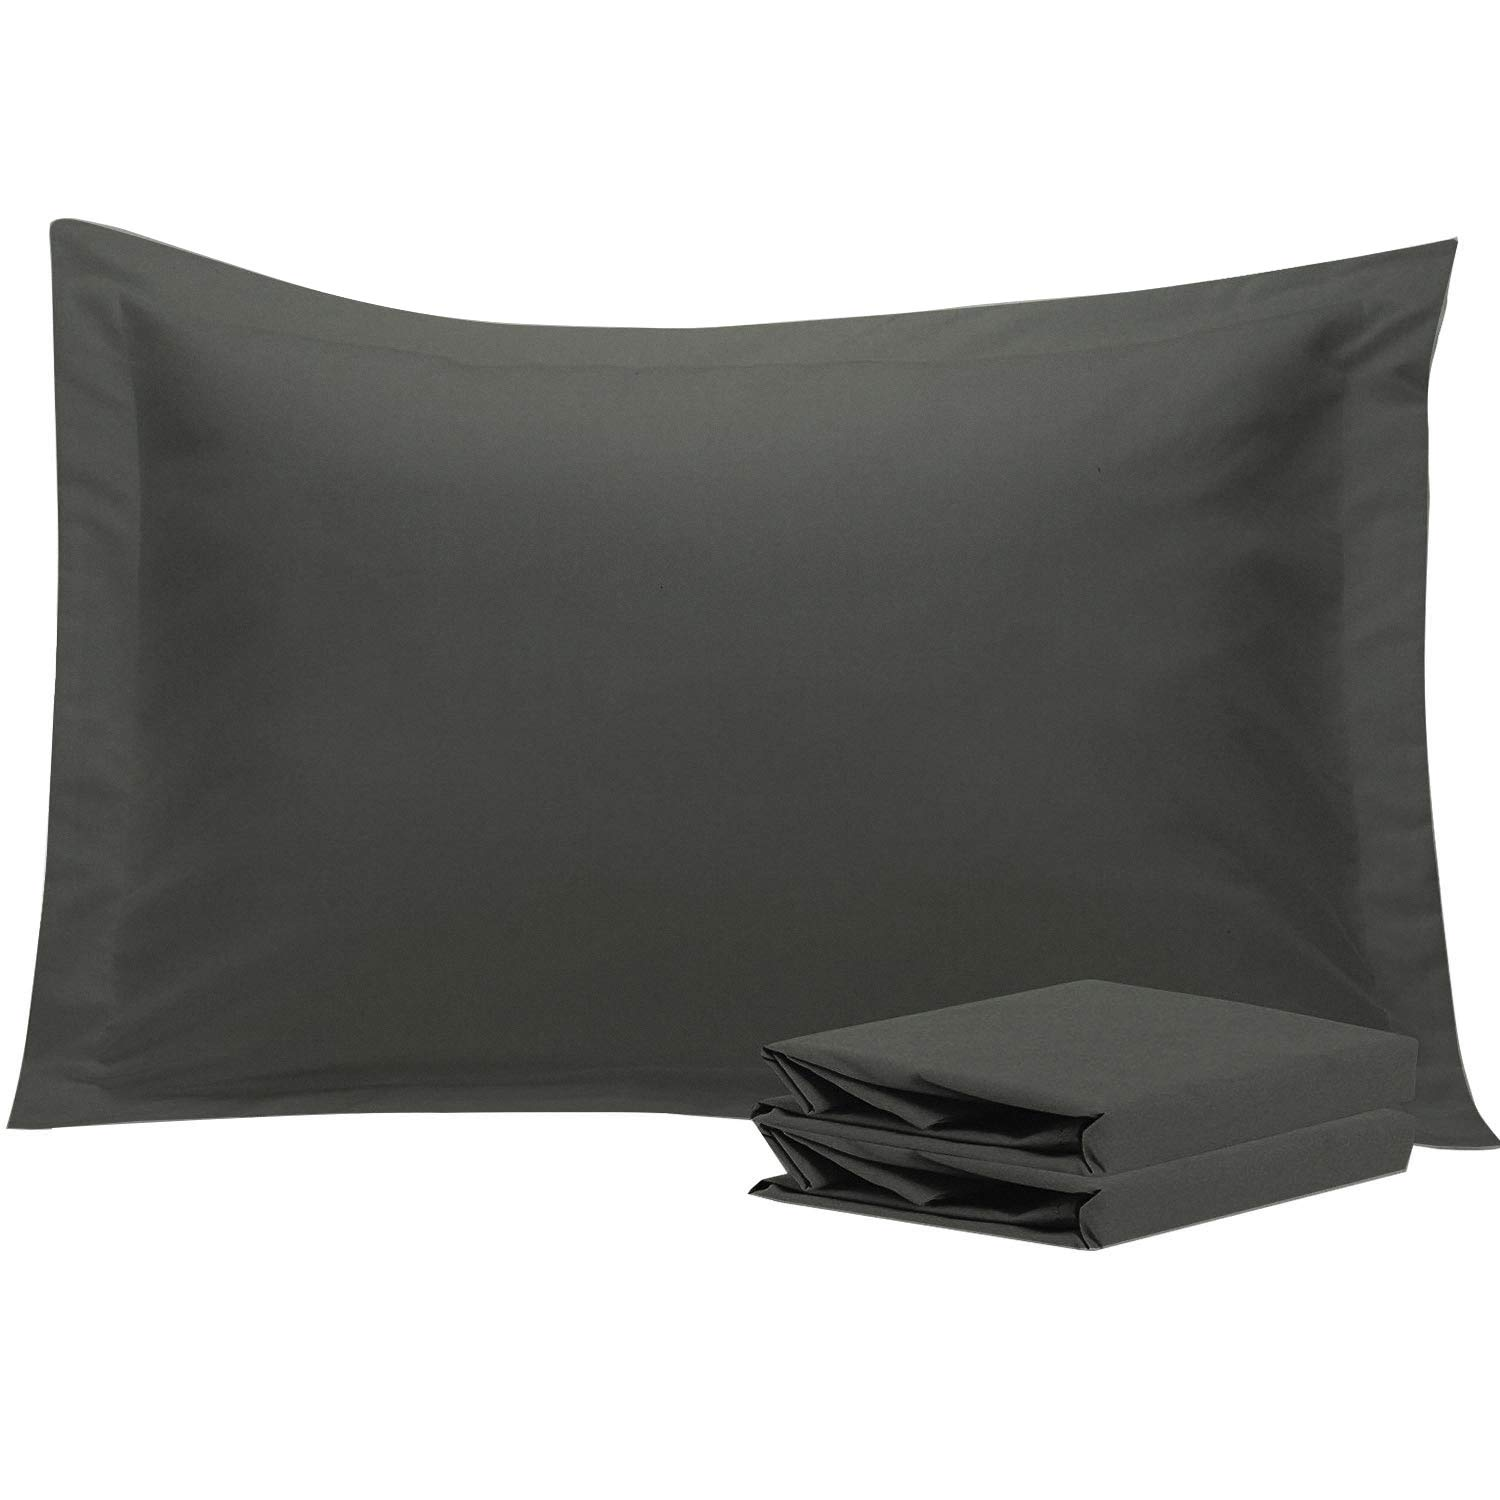 NTBAY King Pillow Shams, Set of 2, 100% Brushed Microfiber, Soft and Cozy, Wrinkle, Fade, Stain Resistant (Dark Grey, King)